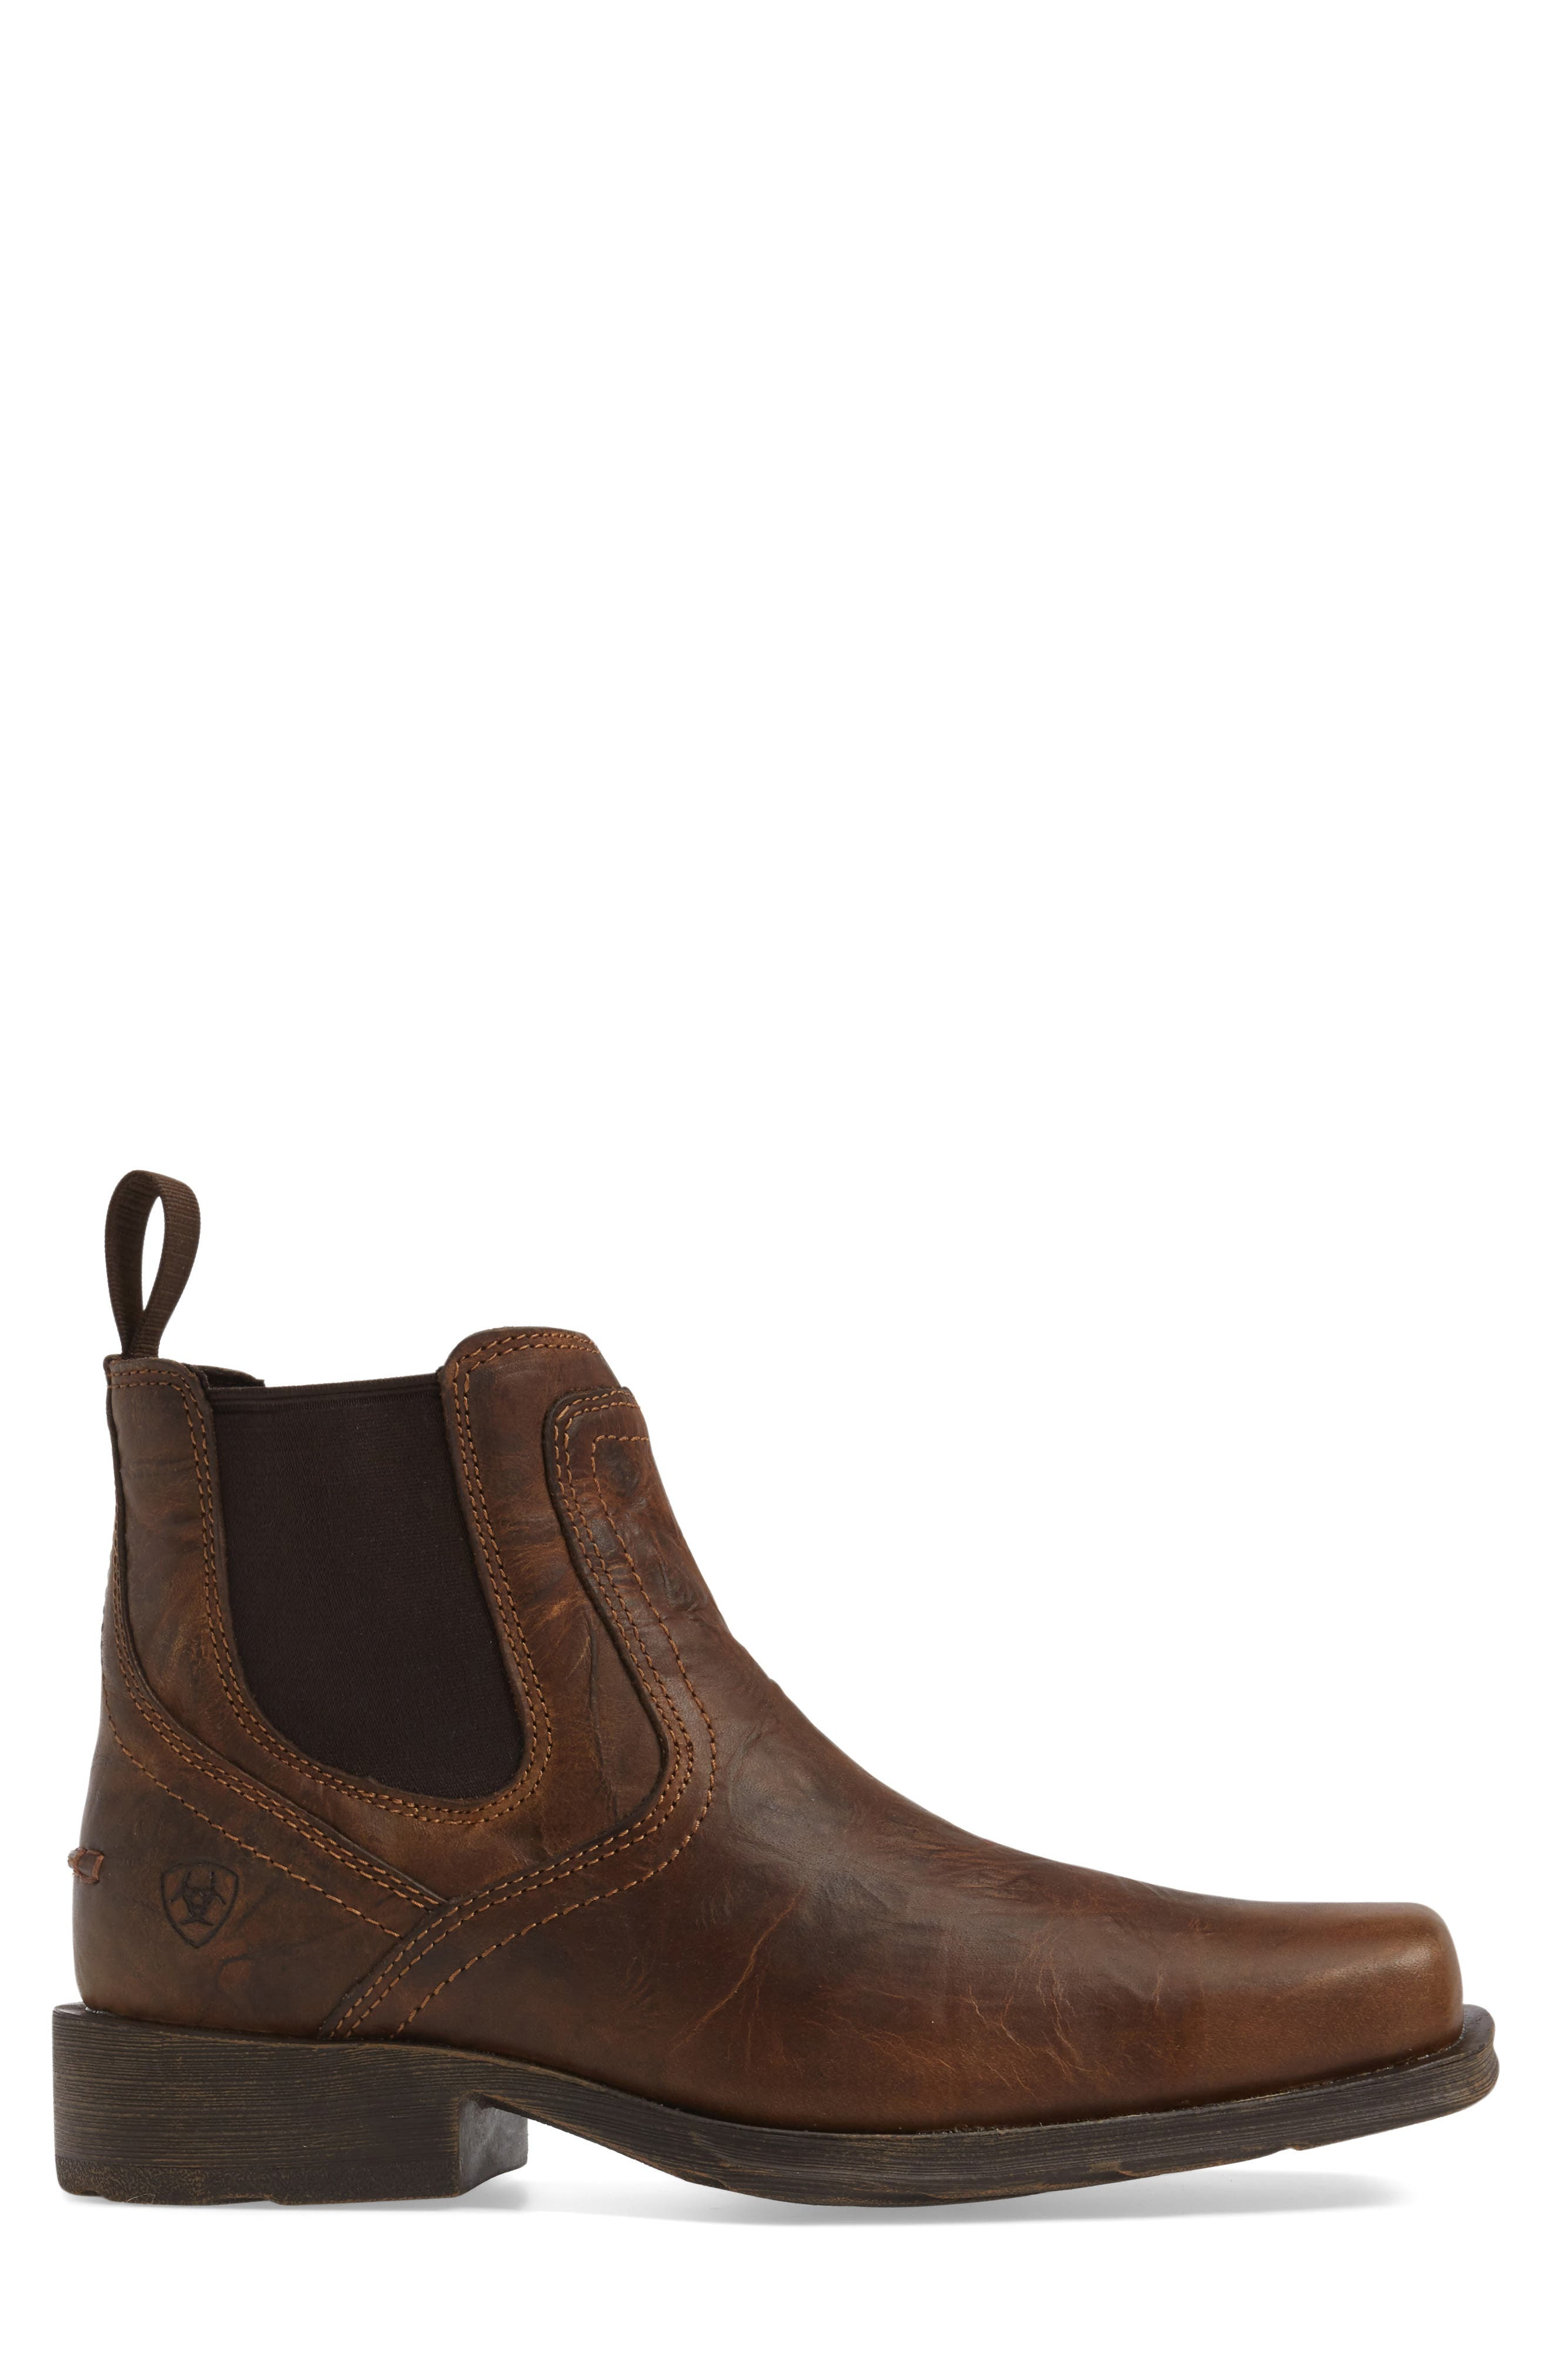 ARIAT,                             Midtown Rambler Mid Chelsea Boot,                             Alternate thumbnail 3, color,                             BARN BROWN